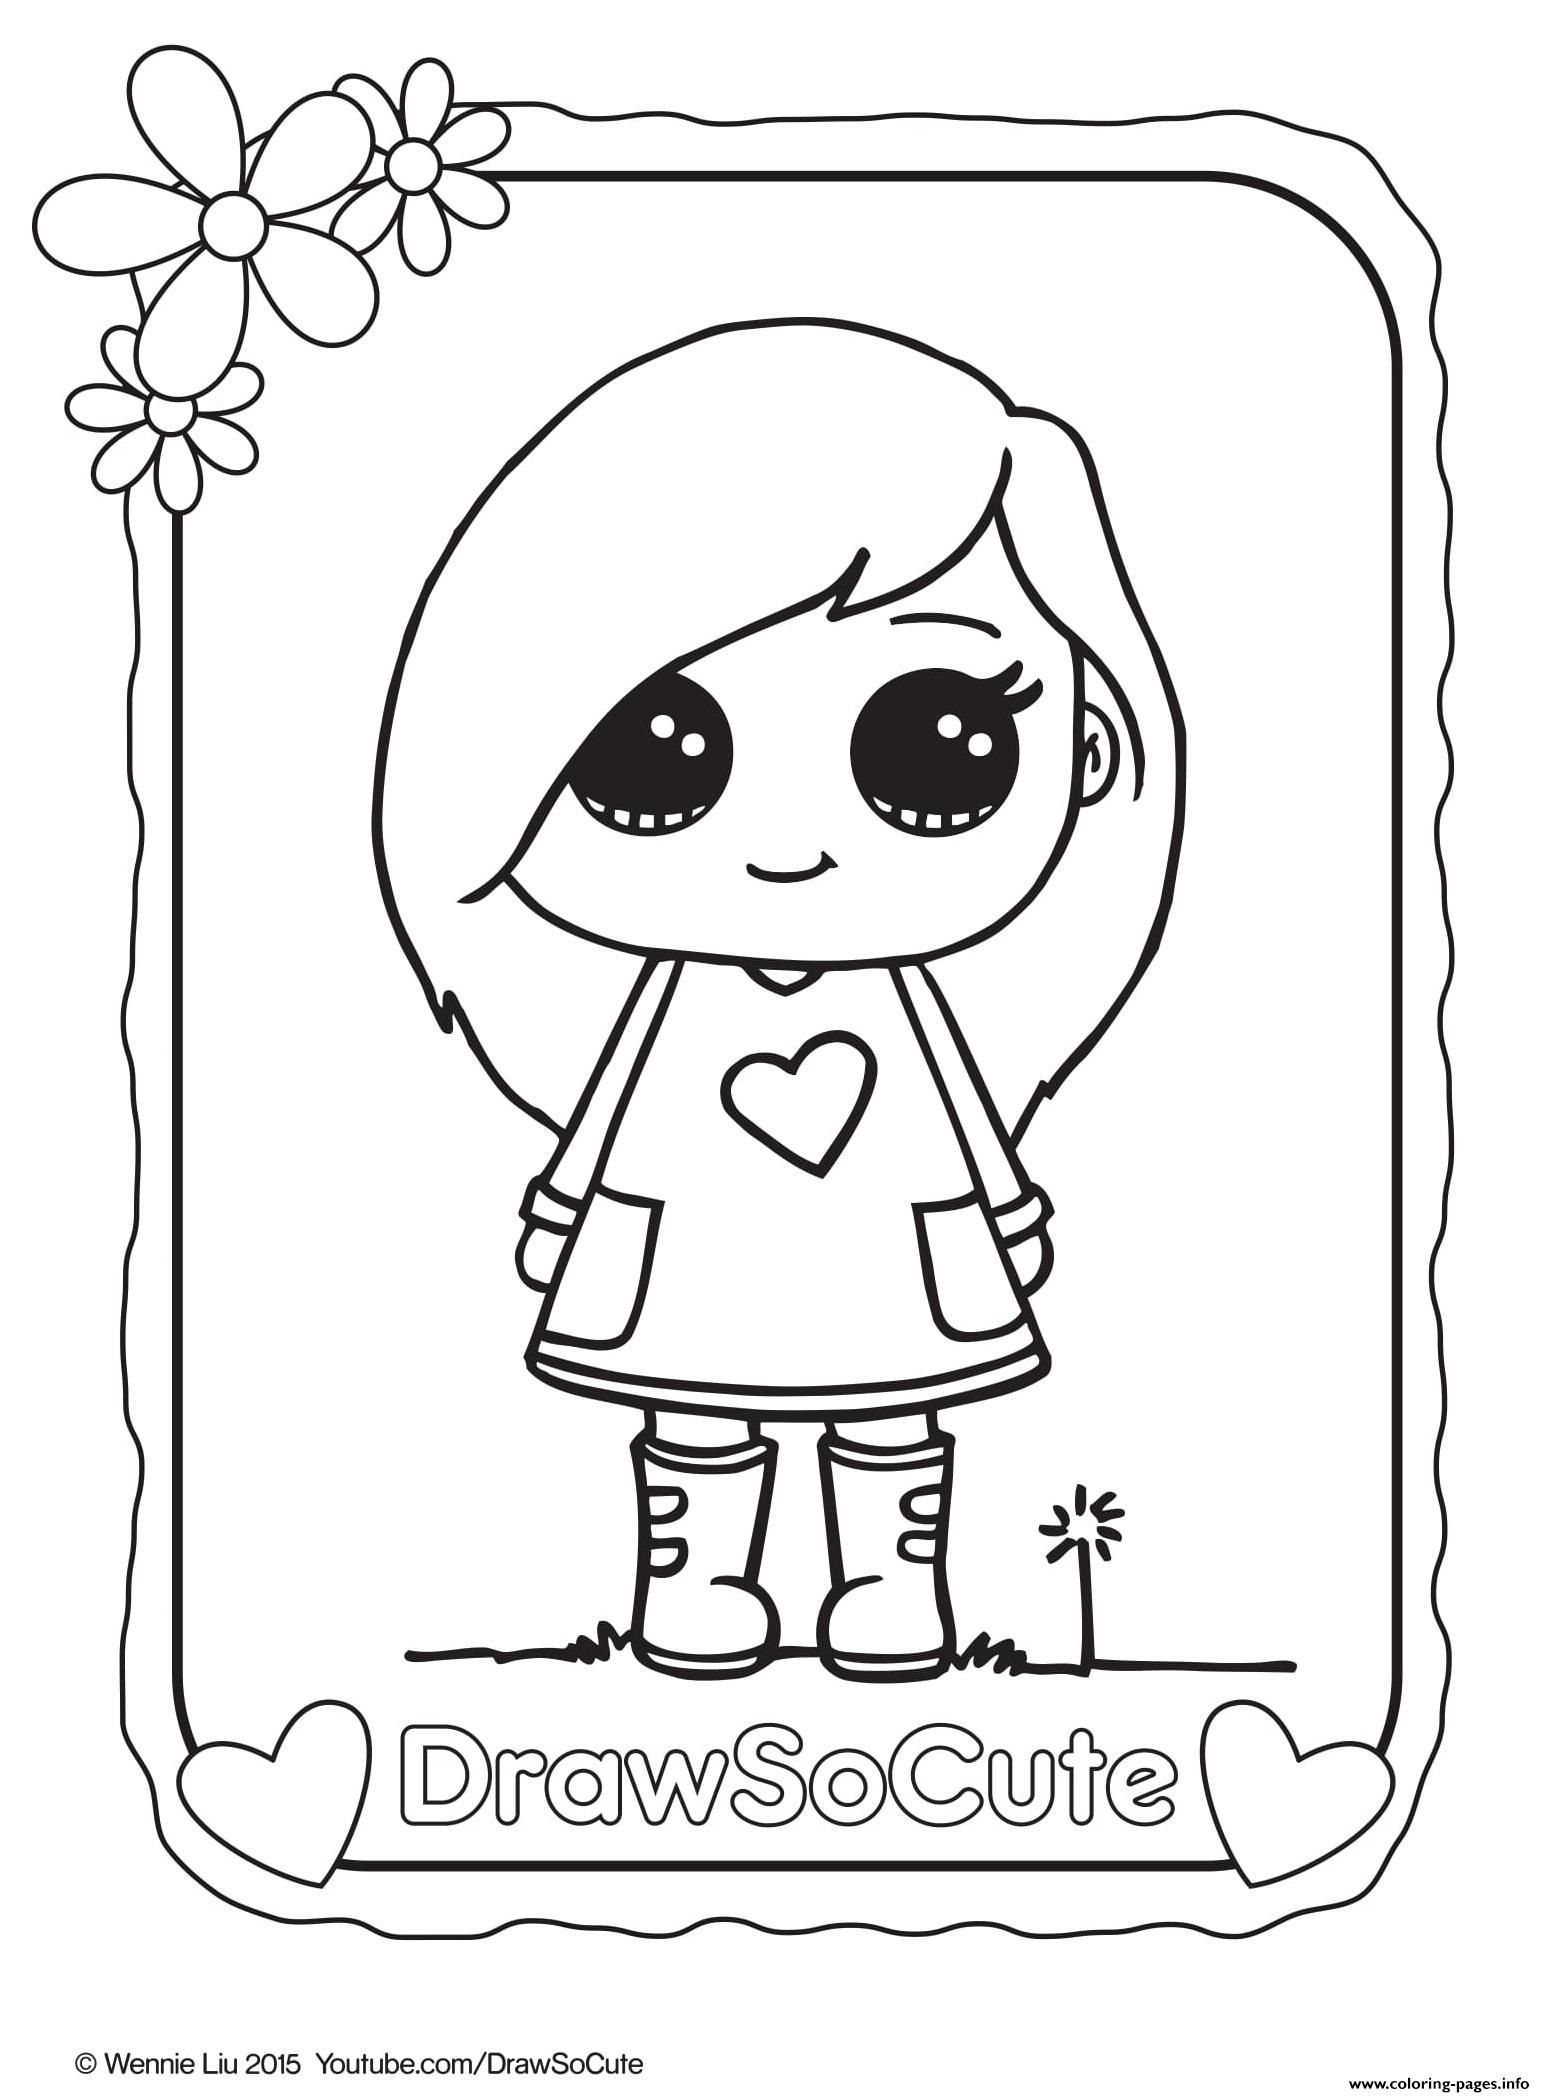 Sophie Draw So Cute Coloring Pages Printable Coloring Page Coloring Page Cute Coloring Pages Cute Drawings Coloring Pages Inspirational